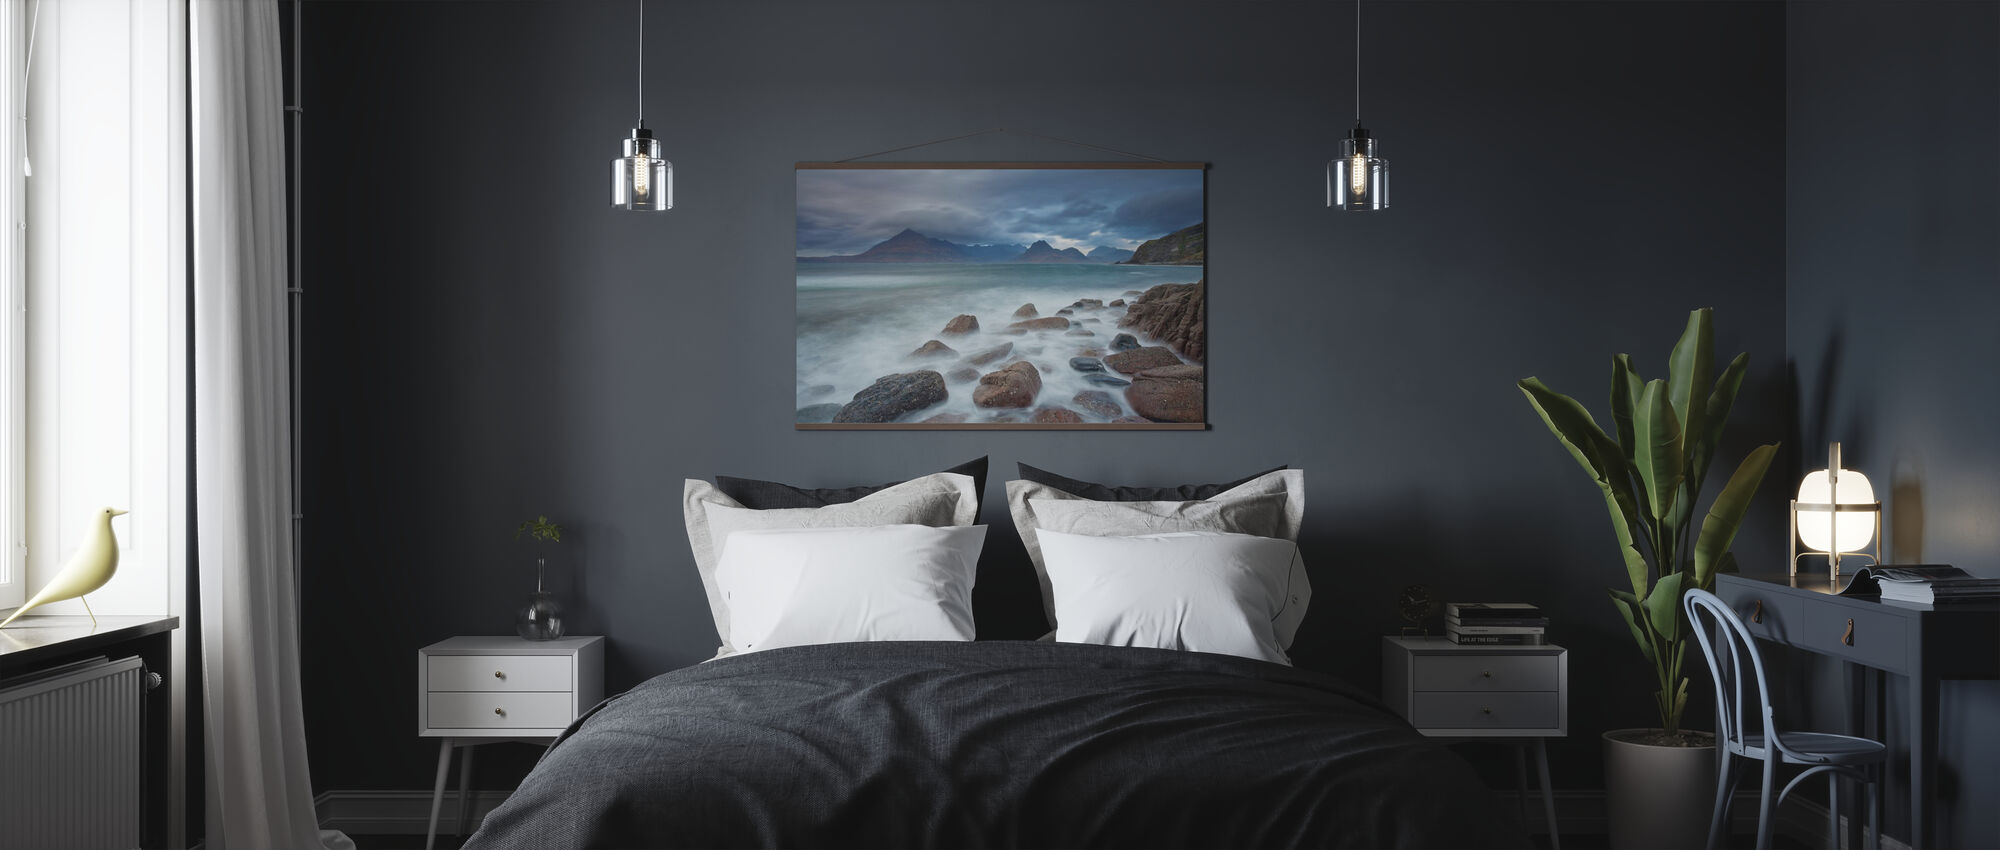 Isle of Skye - Poster - Bedroom